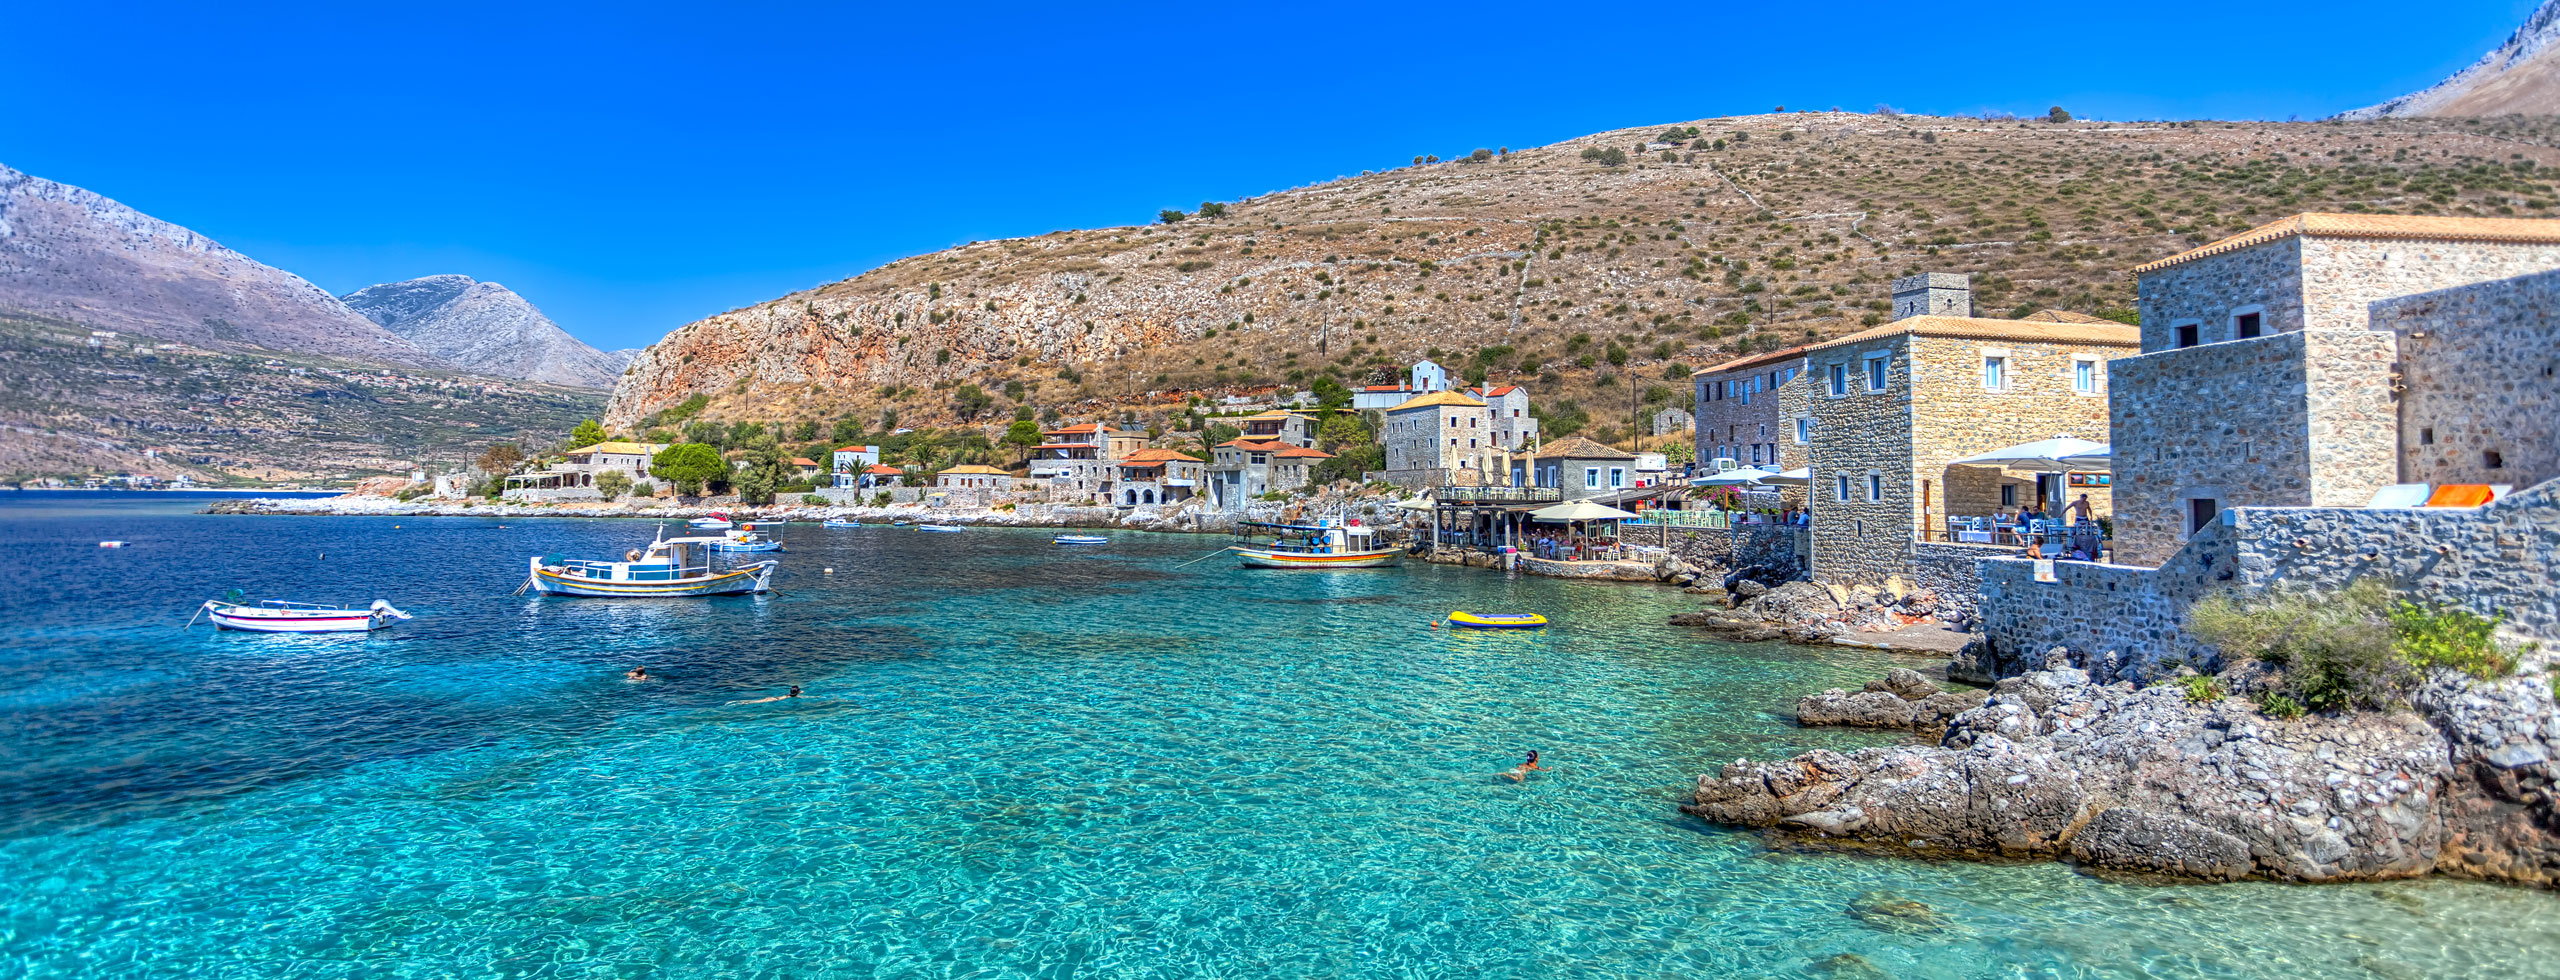 Greek Island Hopping Tour Trips Greek Islands Vacation Packages - Greece tour packages